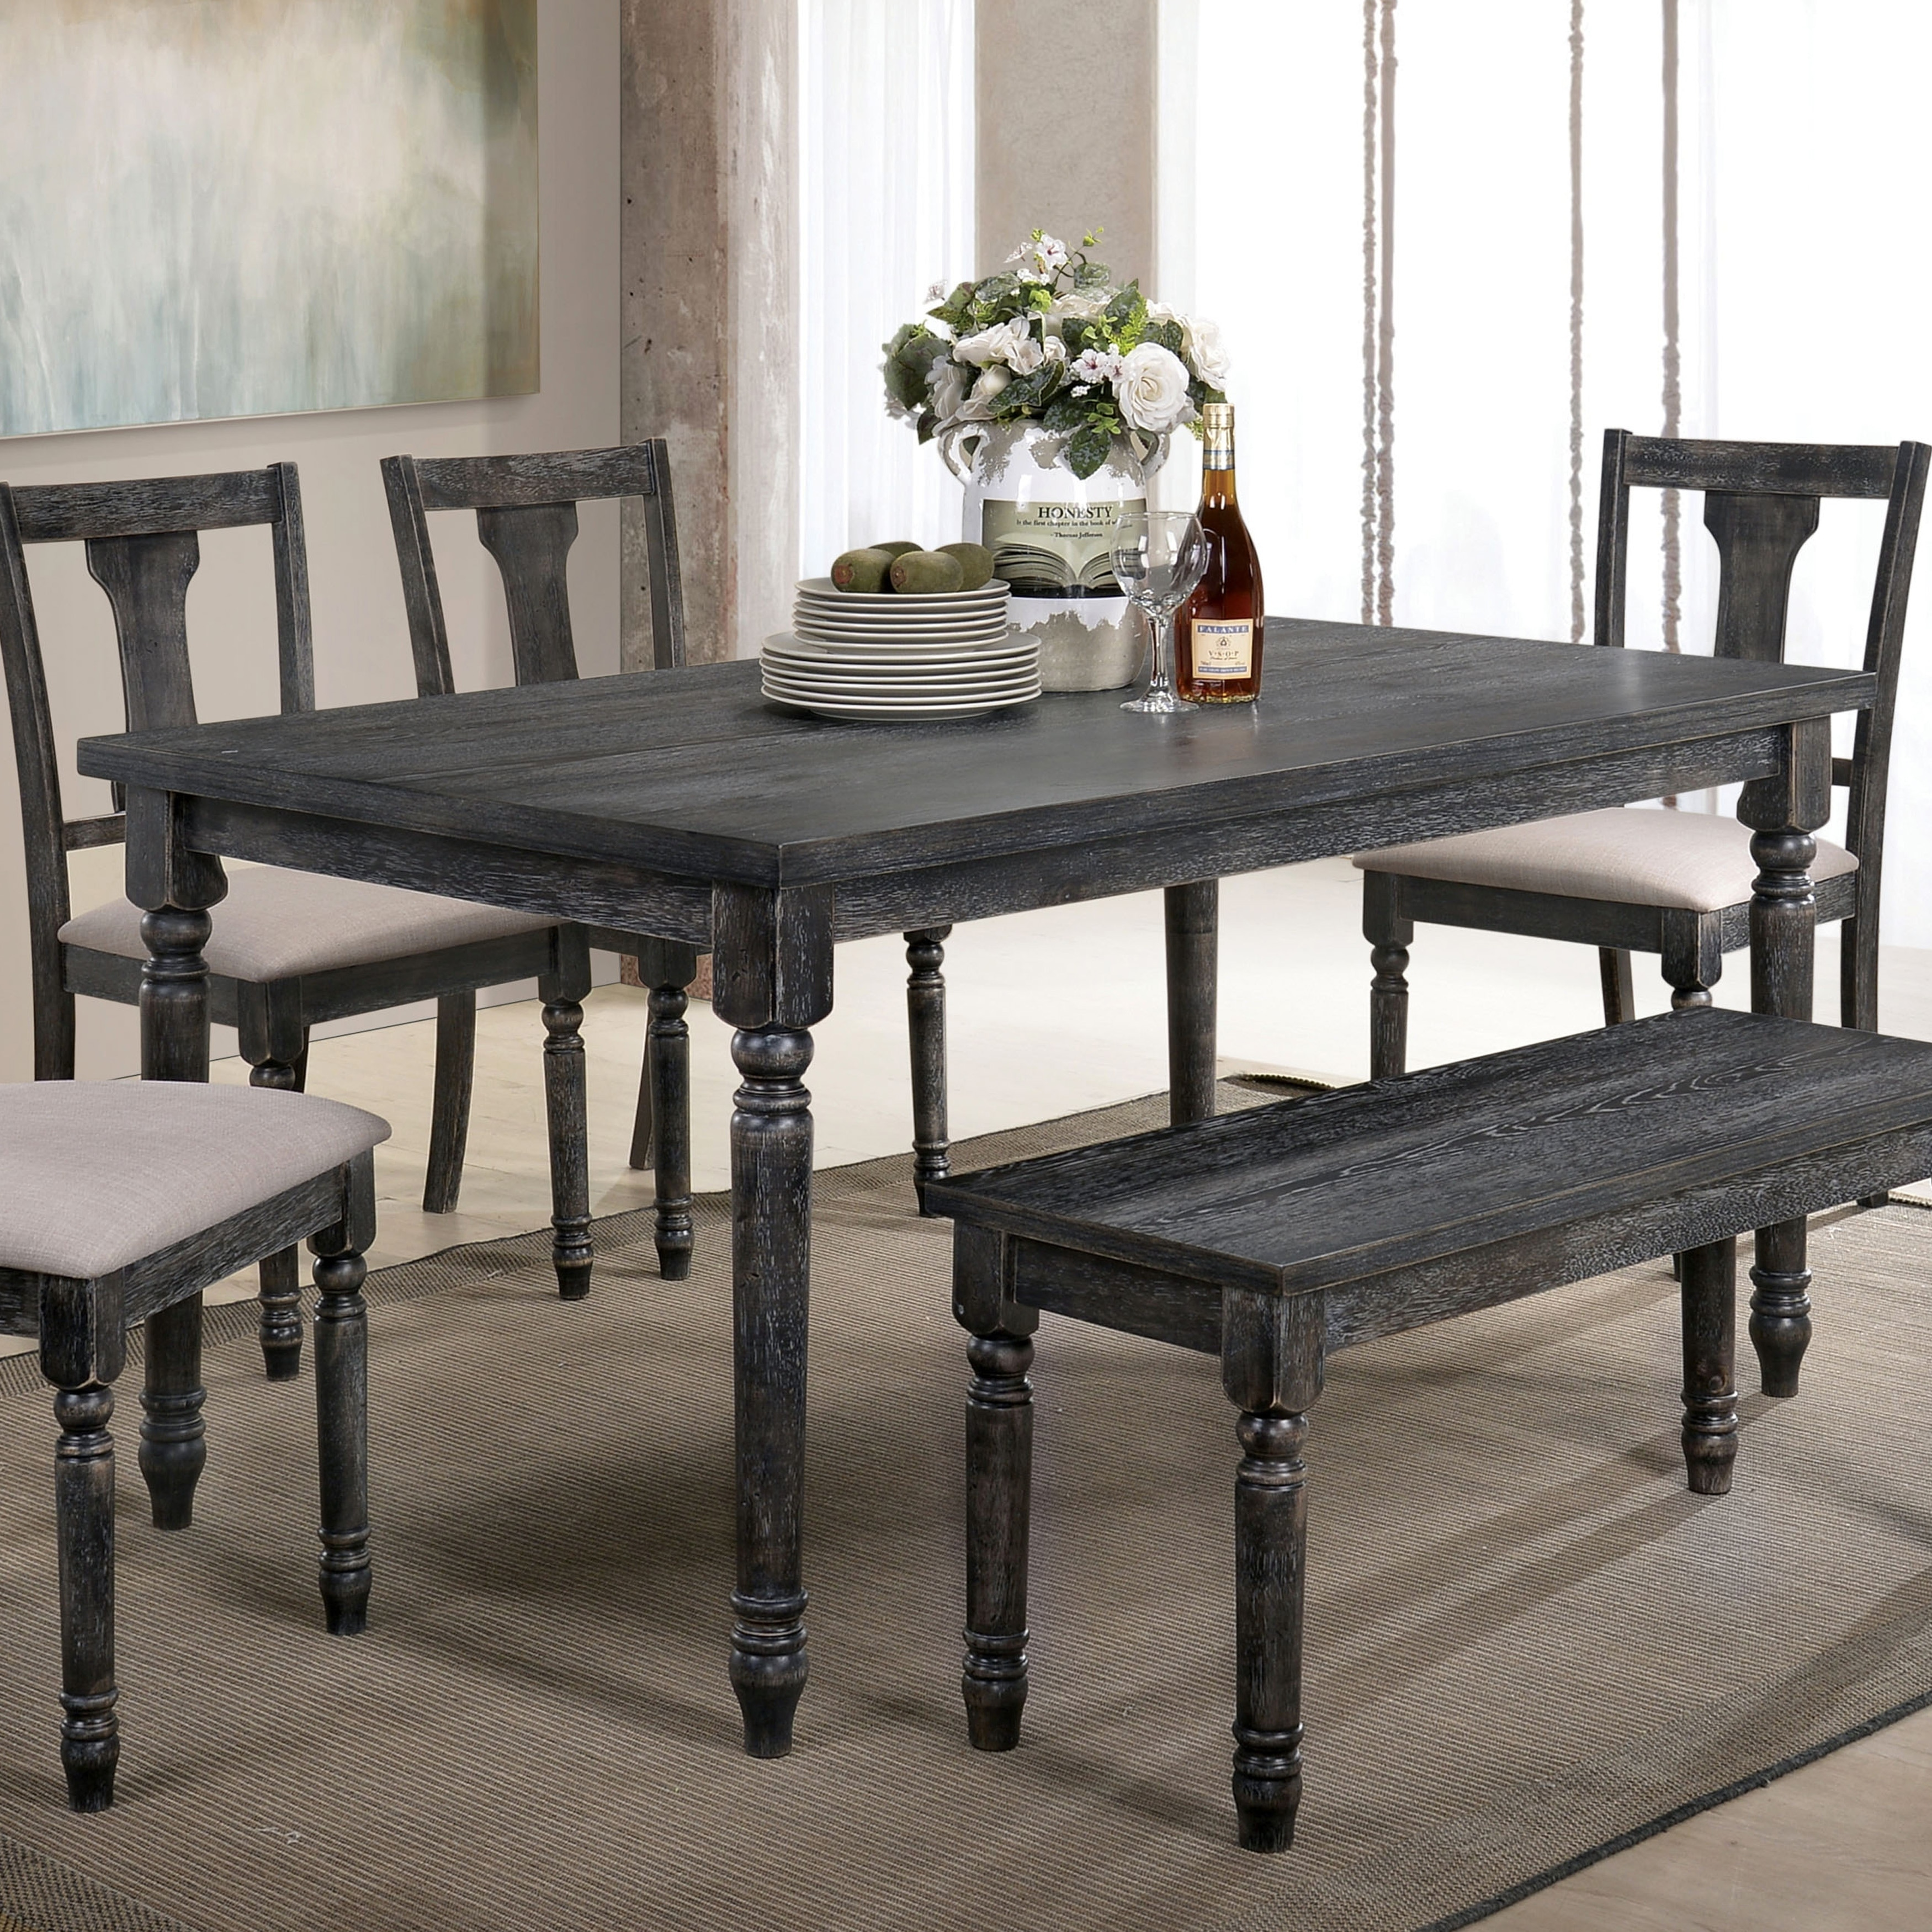 Turned Legs And A Distressed Finish With Rich Color Give This Dining Table Personality All Its Own The Carvings On Lend Traditional